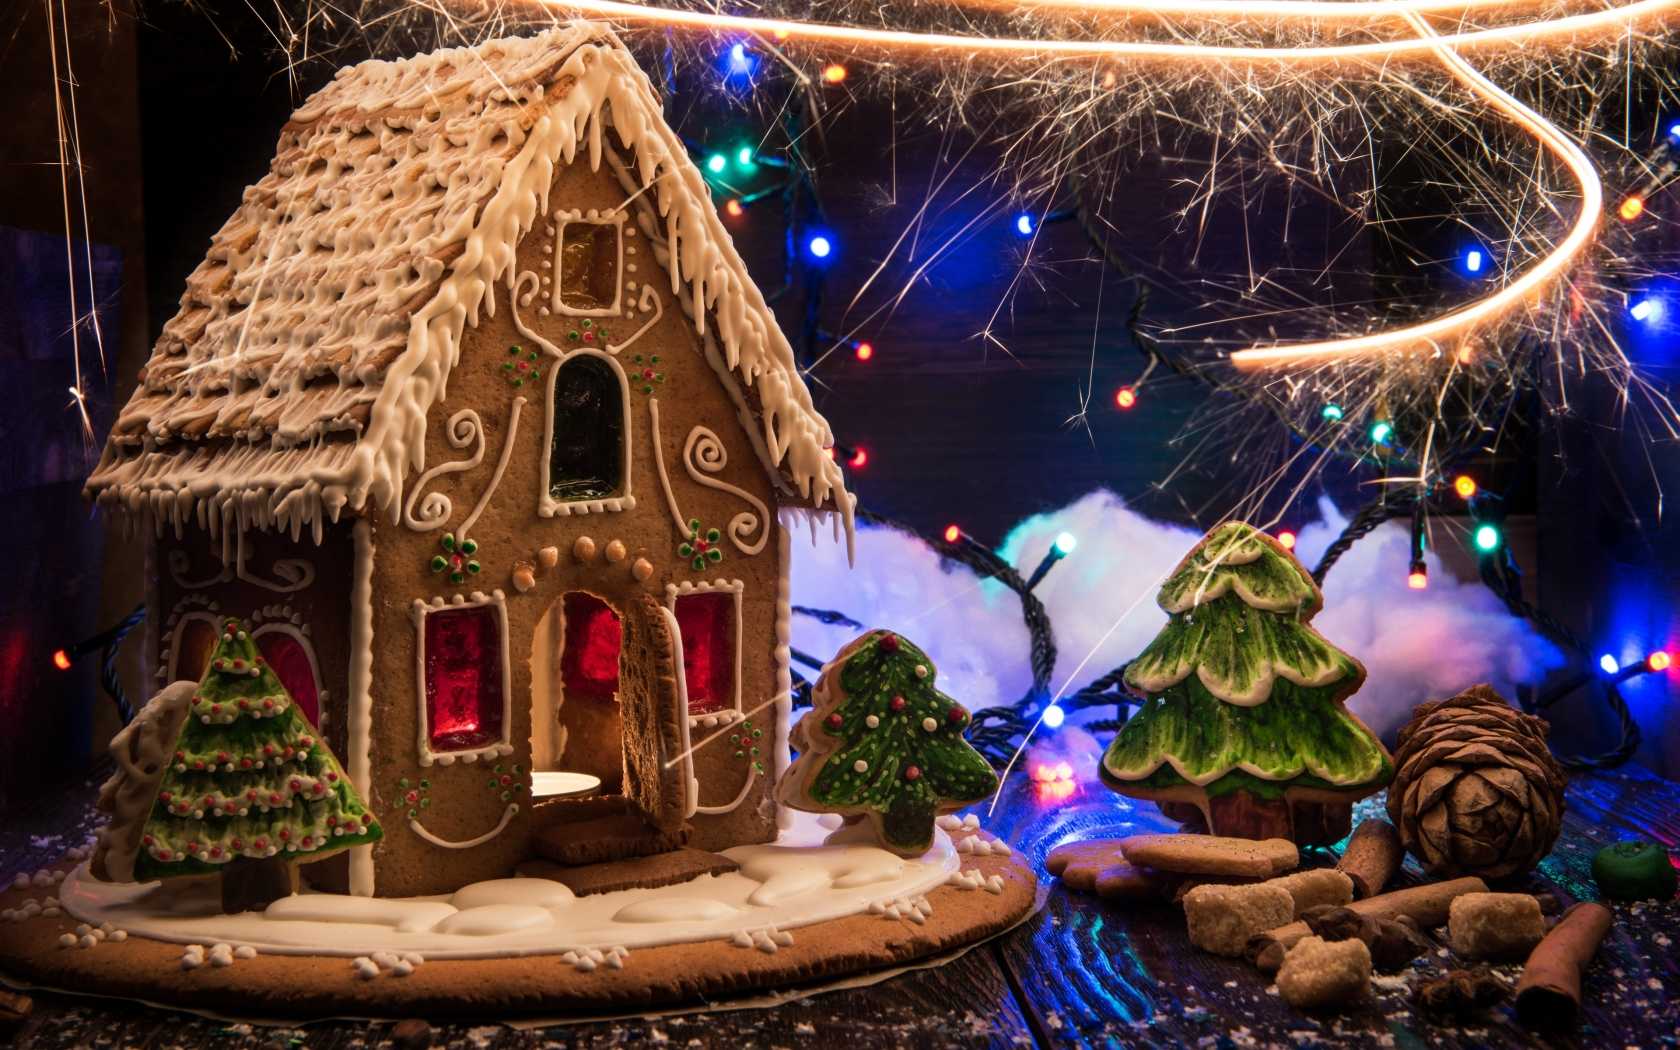 Christmas Gingerbread Decorations for 1680 x 1050 widescreen resolution